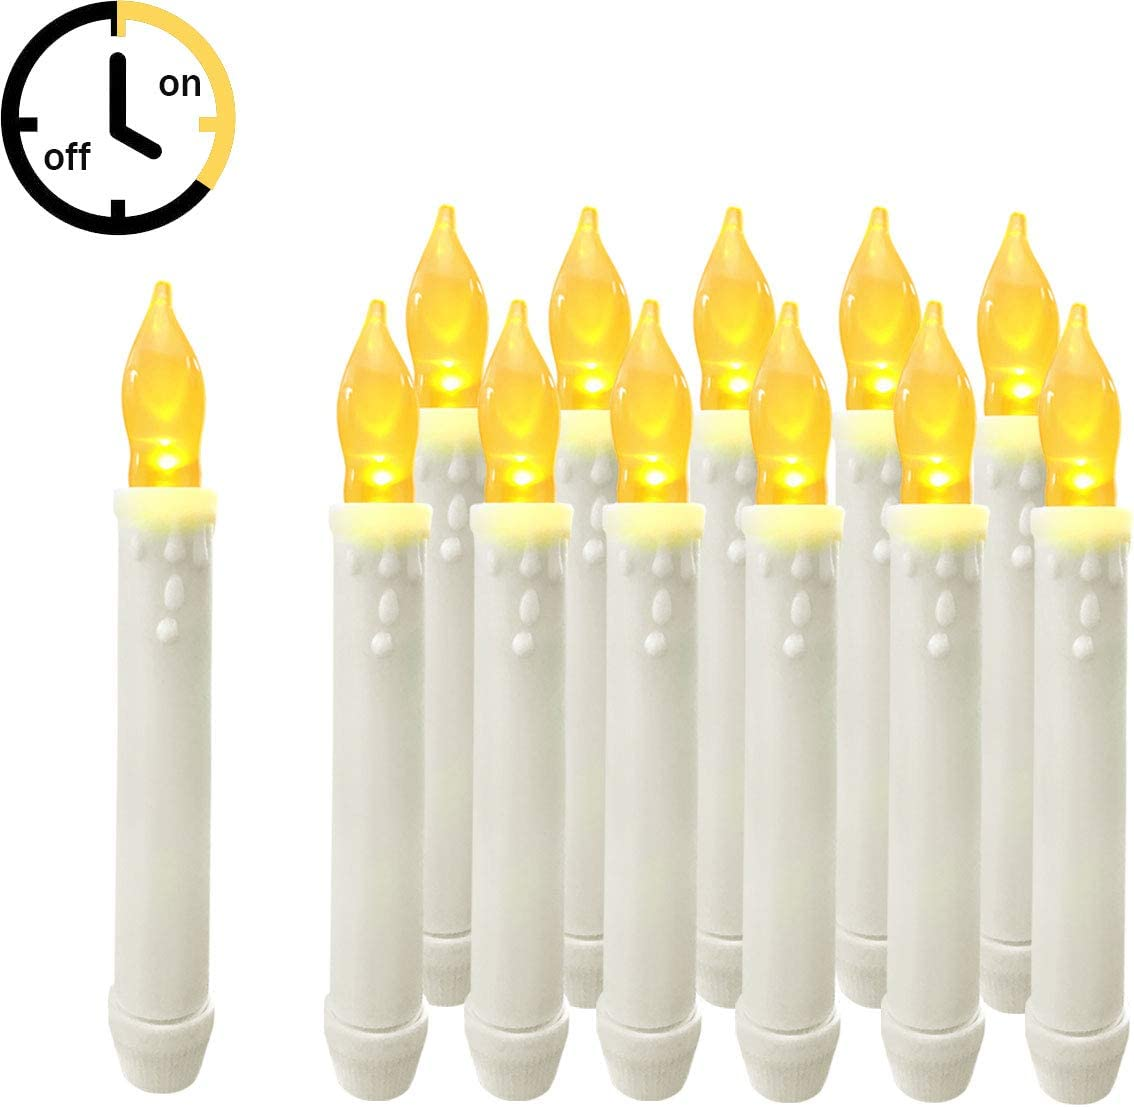 12PCS Battery Operated Flameless LED Timer Taper Window Candles Lights Wedding, Churches,Floating Candles For Birthday Party Decorations, Yellow